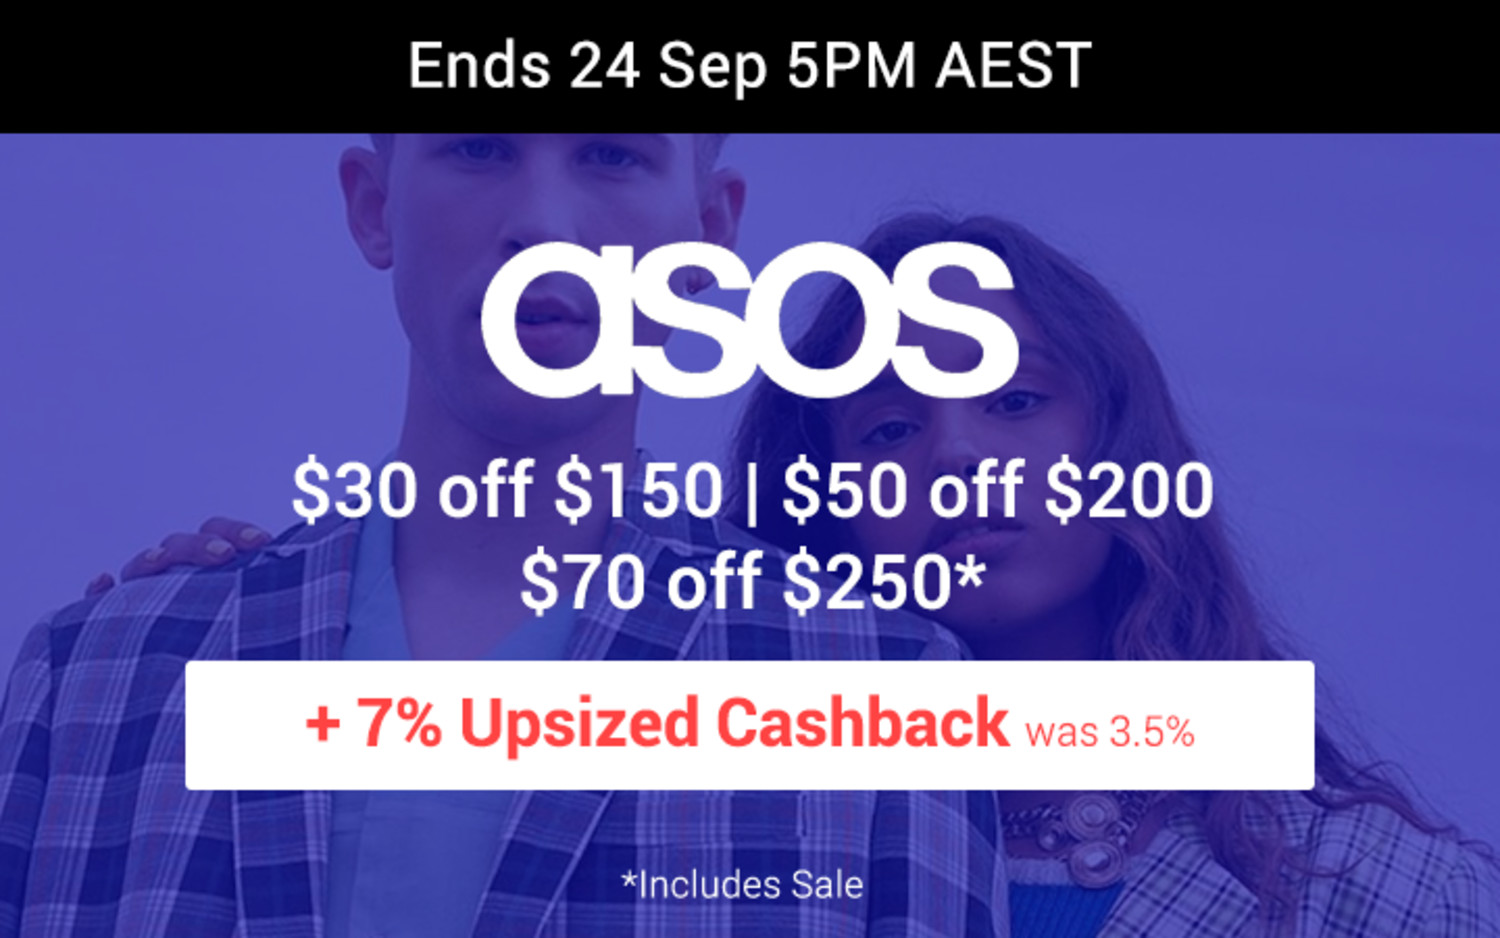 ASOS - Up to $70 off